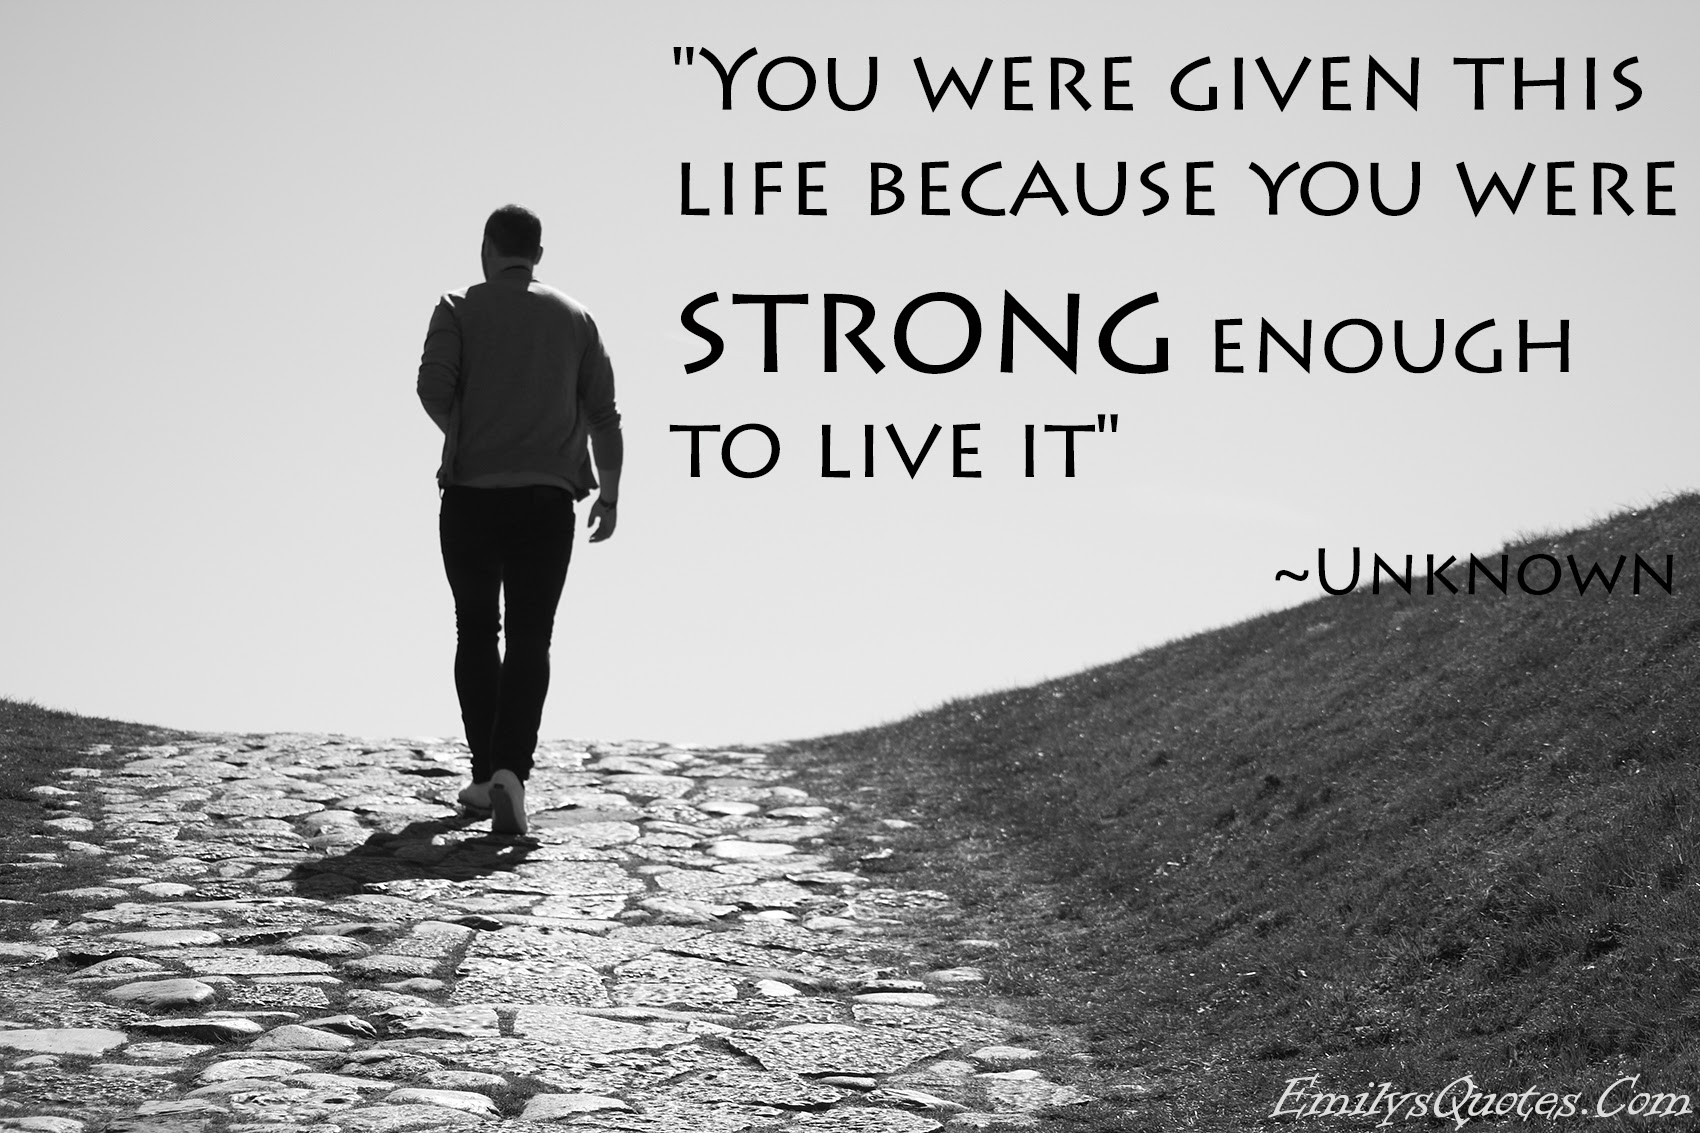 You Were Given This Life Because You Were Strong Enough To Live It